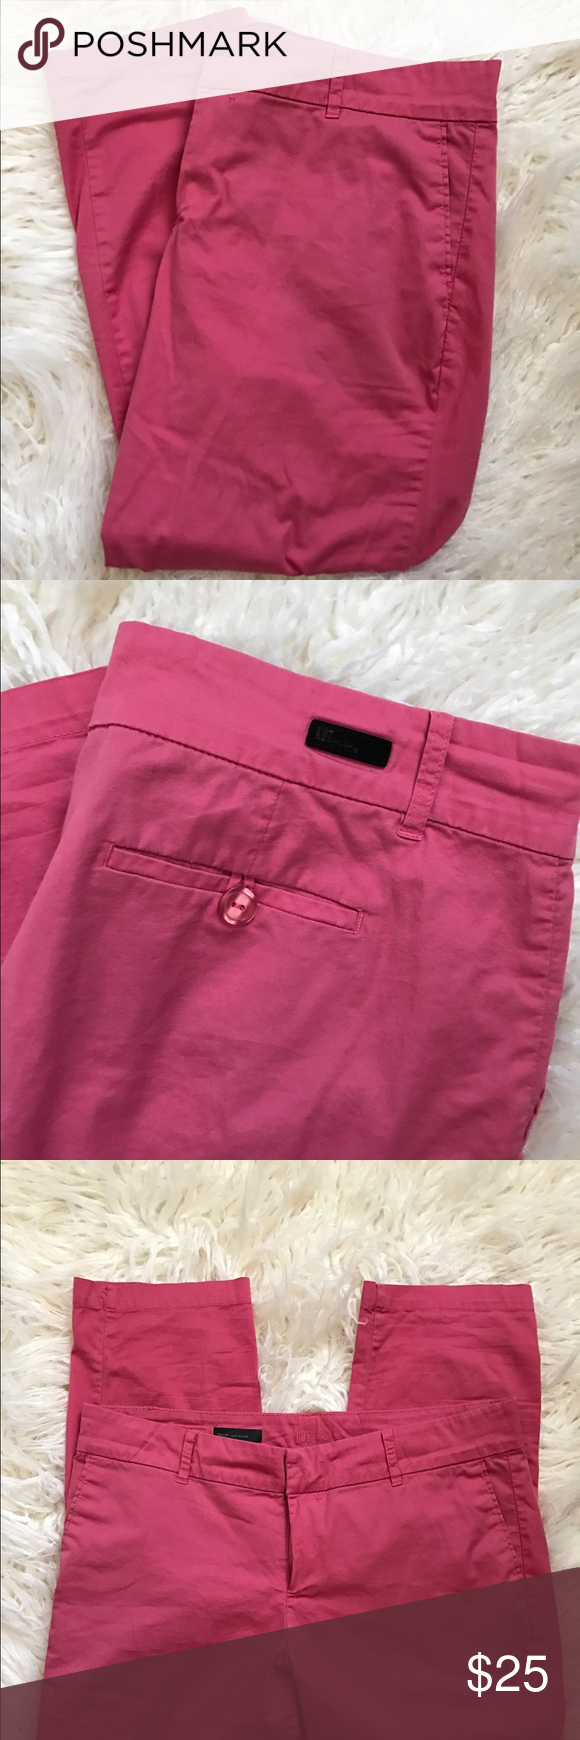 Kut from the Kloth Taylor Crop Trouser Pants Sz 14 Kut from the Kloth 'Taylor' Crop Pink Trouser. In good condition.  • Style#: KC330MA3SF • Cut# 104082 • 98% Cotton; 2% Spandex • Machine Wash Cold, Lay Flat to Dry Kut from the Kloth Pants Trousers